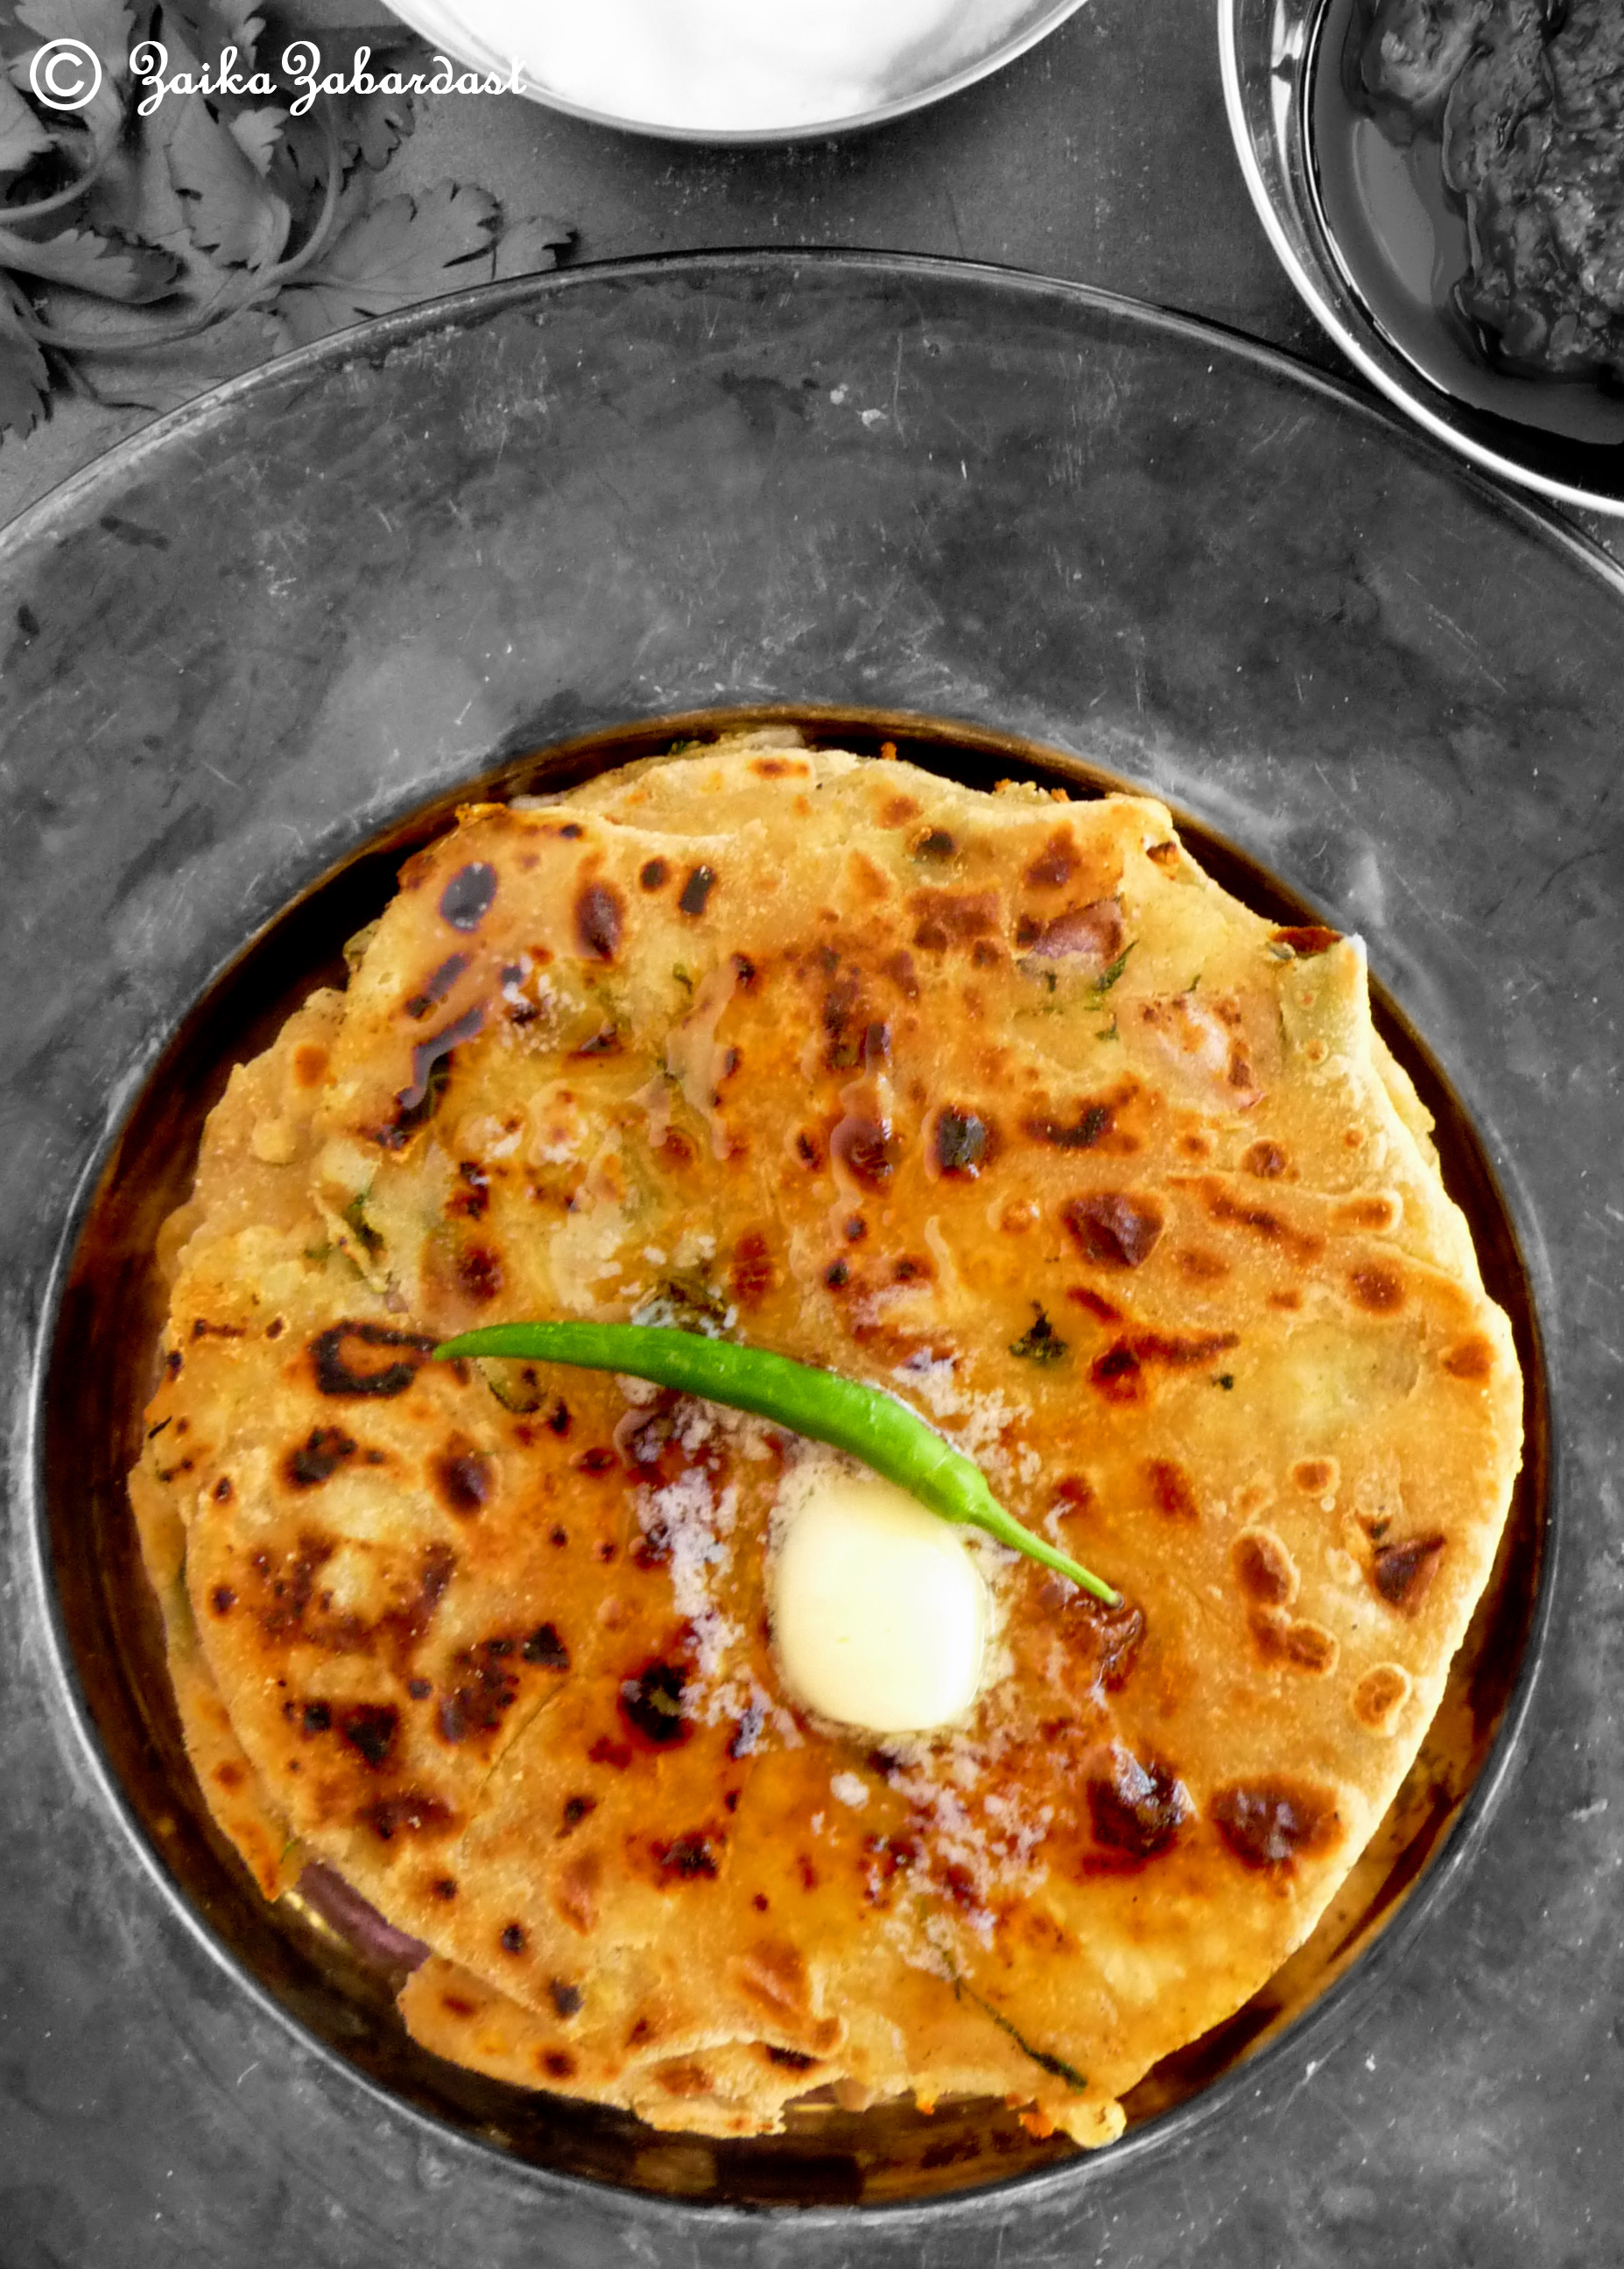 Aloo paratha aka potato stuffed indian flat bread every indians paratha aka whole wheat indian flat bread is eaten traditionally for breakfast all over the northern india simple paratha is normally made of whole wheat forumfinder Image collections